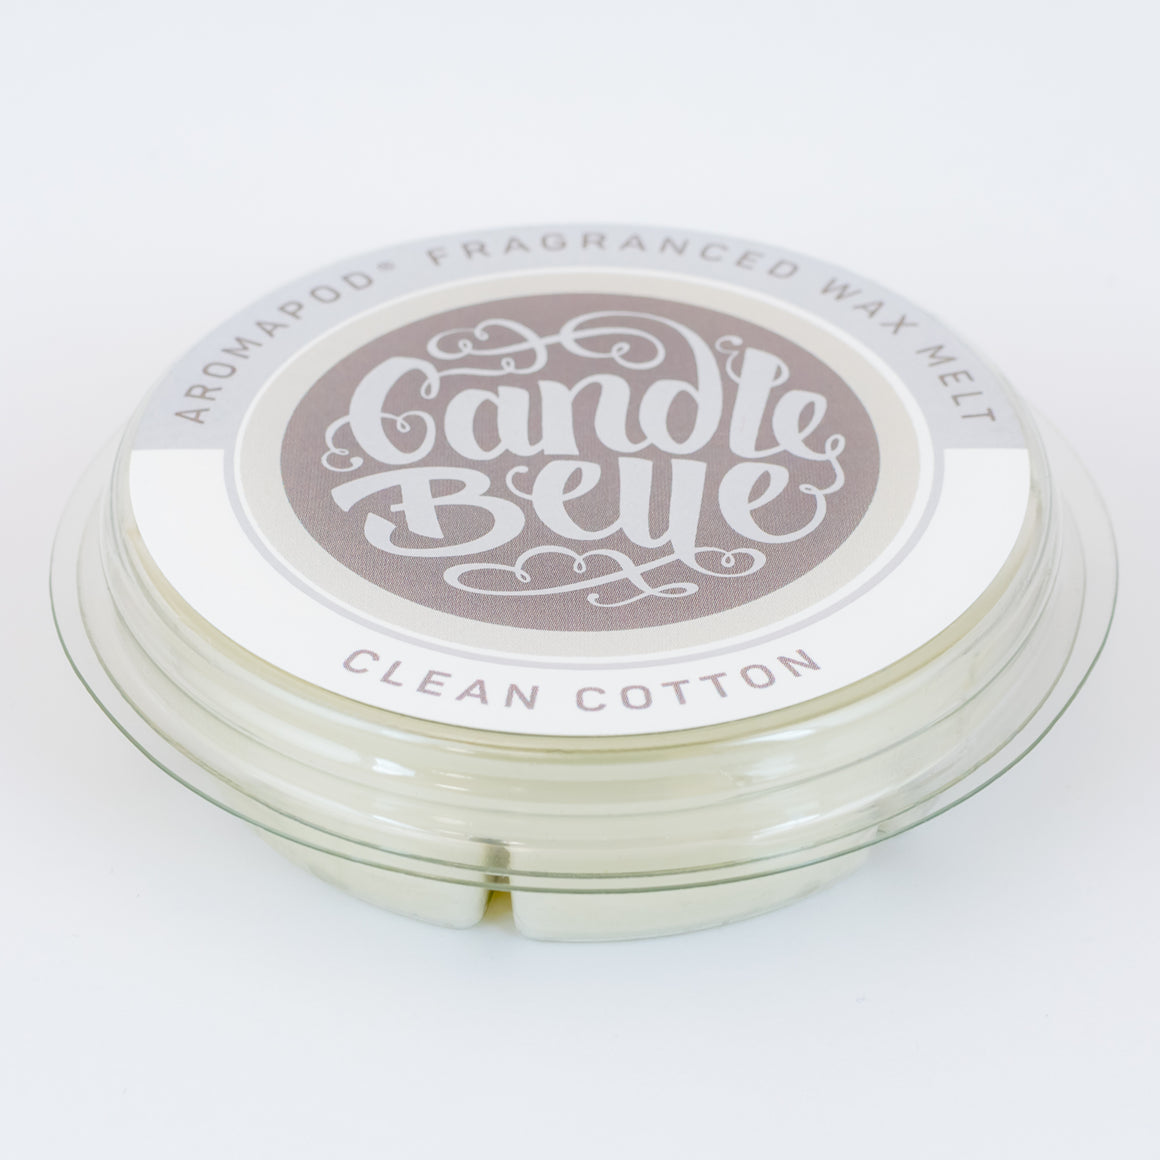 Candle Belle® Aromapod® Clean Cotton Fragranced Wax Melt 48g (9 Pack) - Candle Belle® Trade